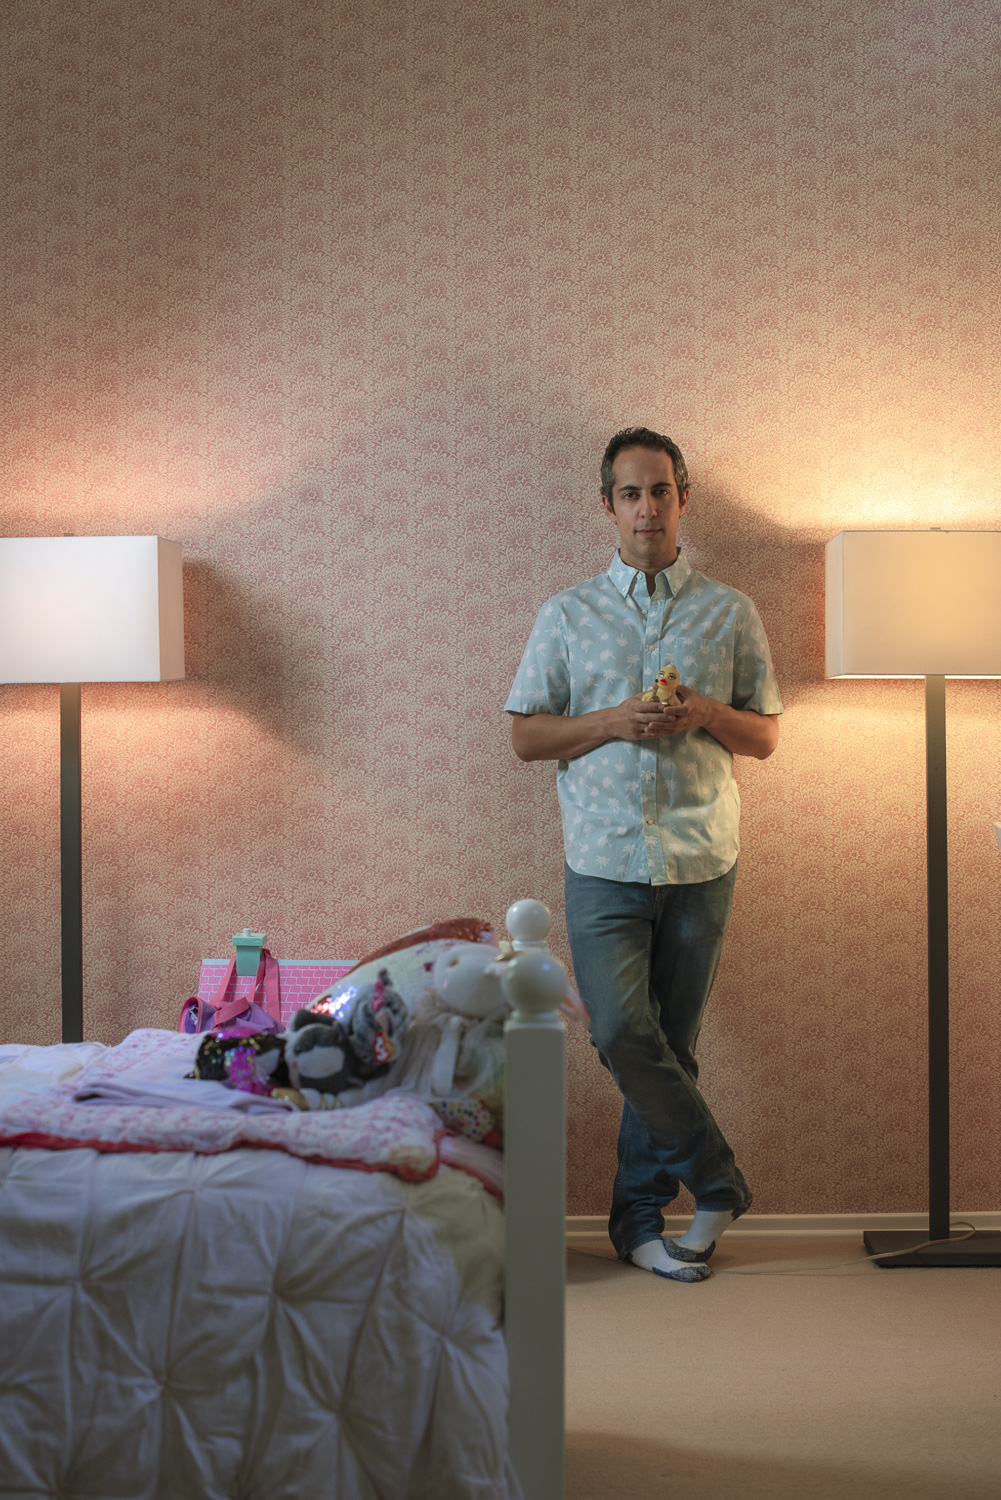 Abdi Nazemian in bedroom with doll